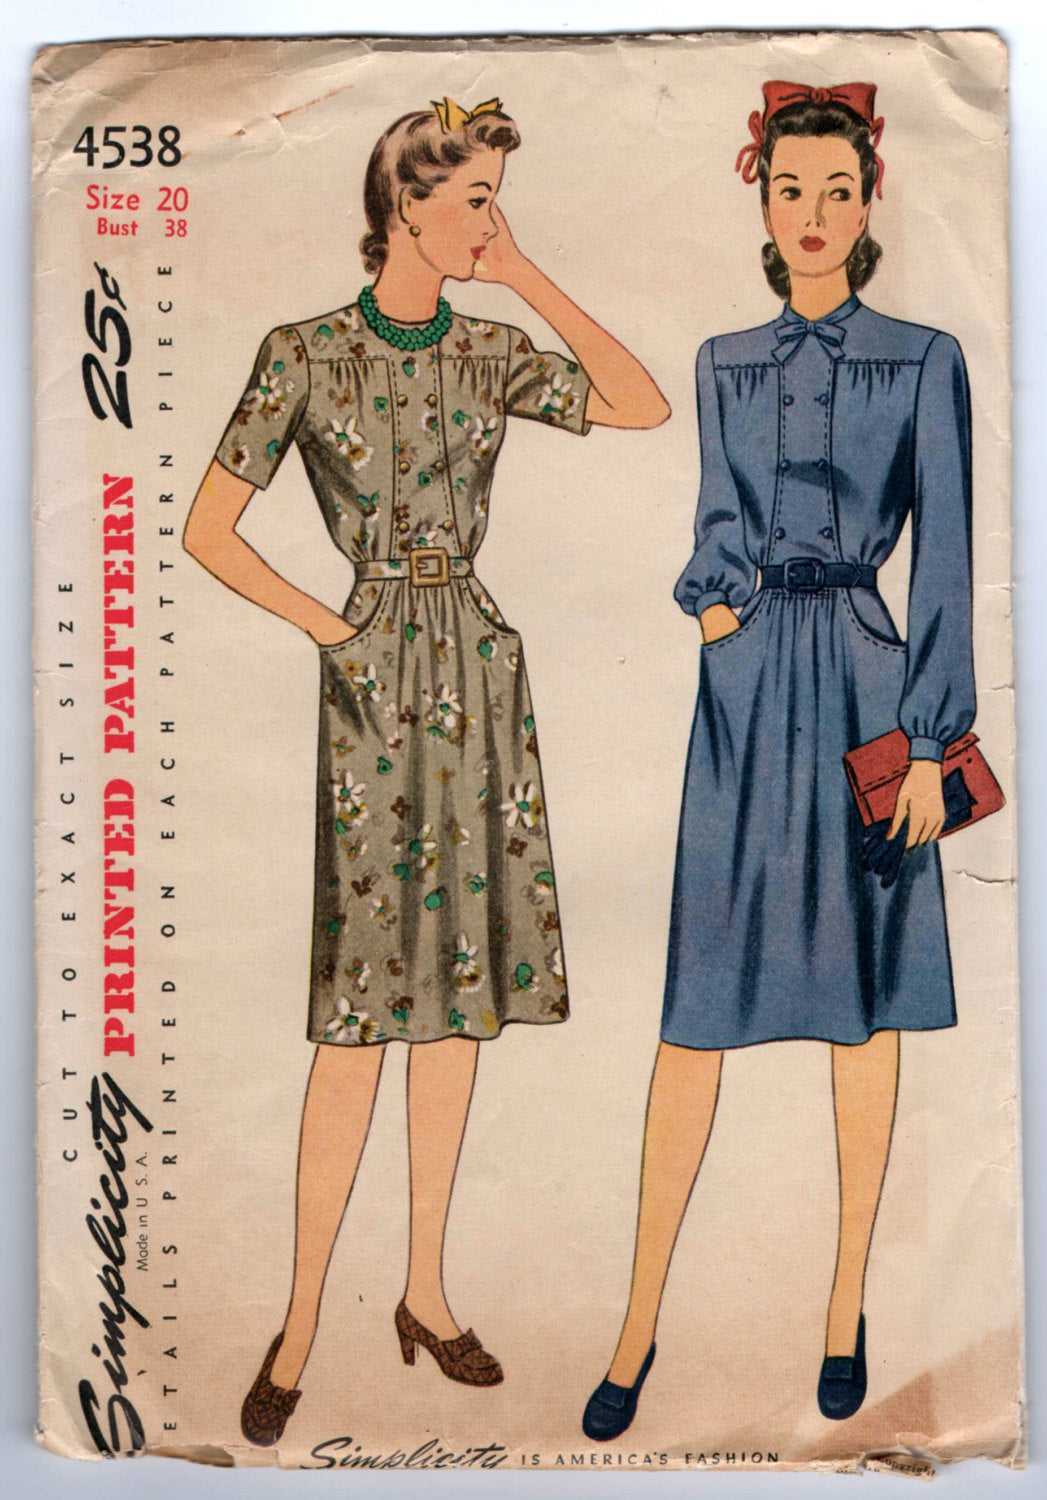 1940's Day Dress with Double-Breasted, Bow Detail at neck with Pockets Pattern by Simplicity - Bust 38